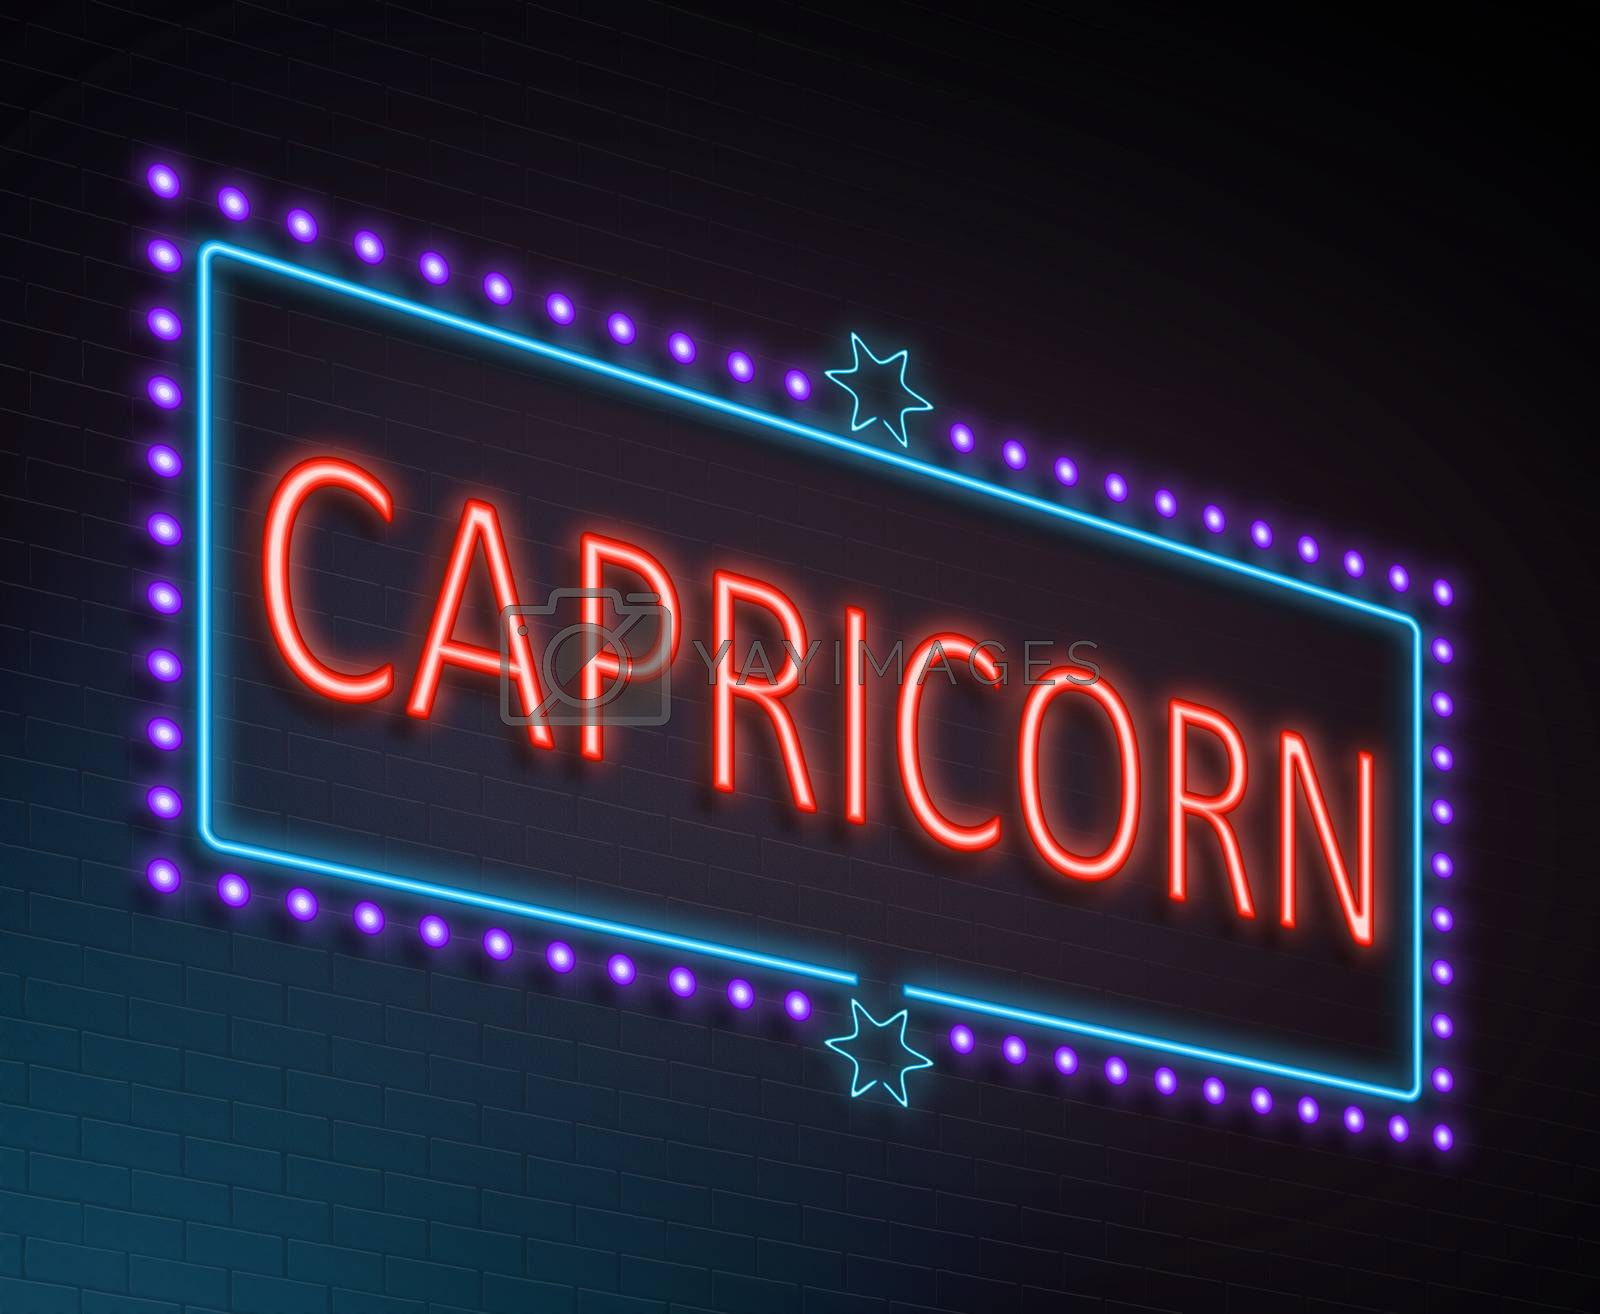 Illustration depicting an illuminated neon sign with a capricorn concept.